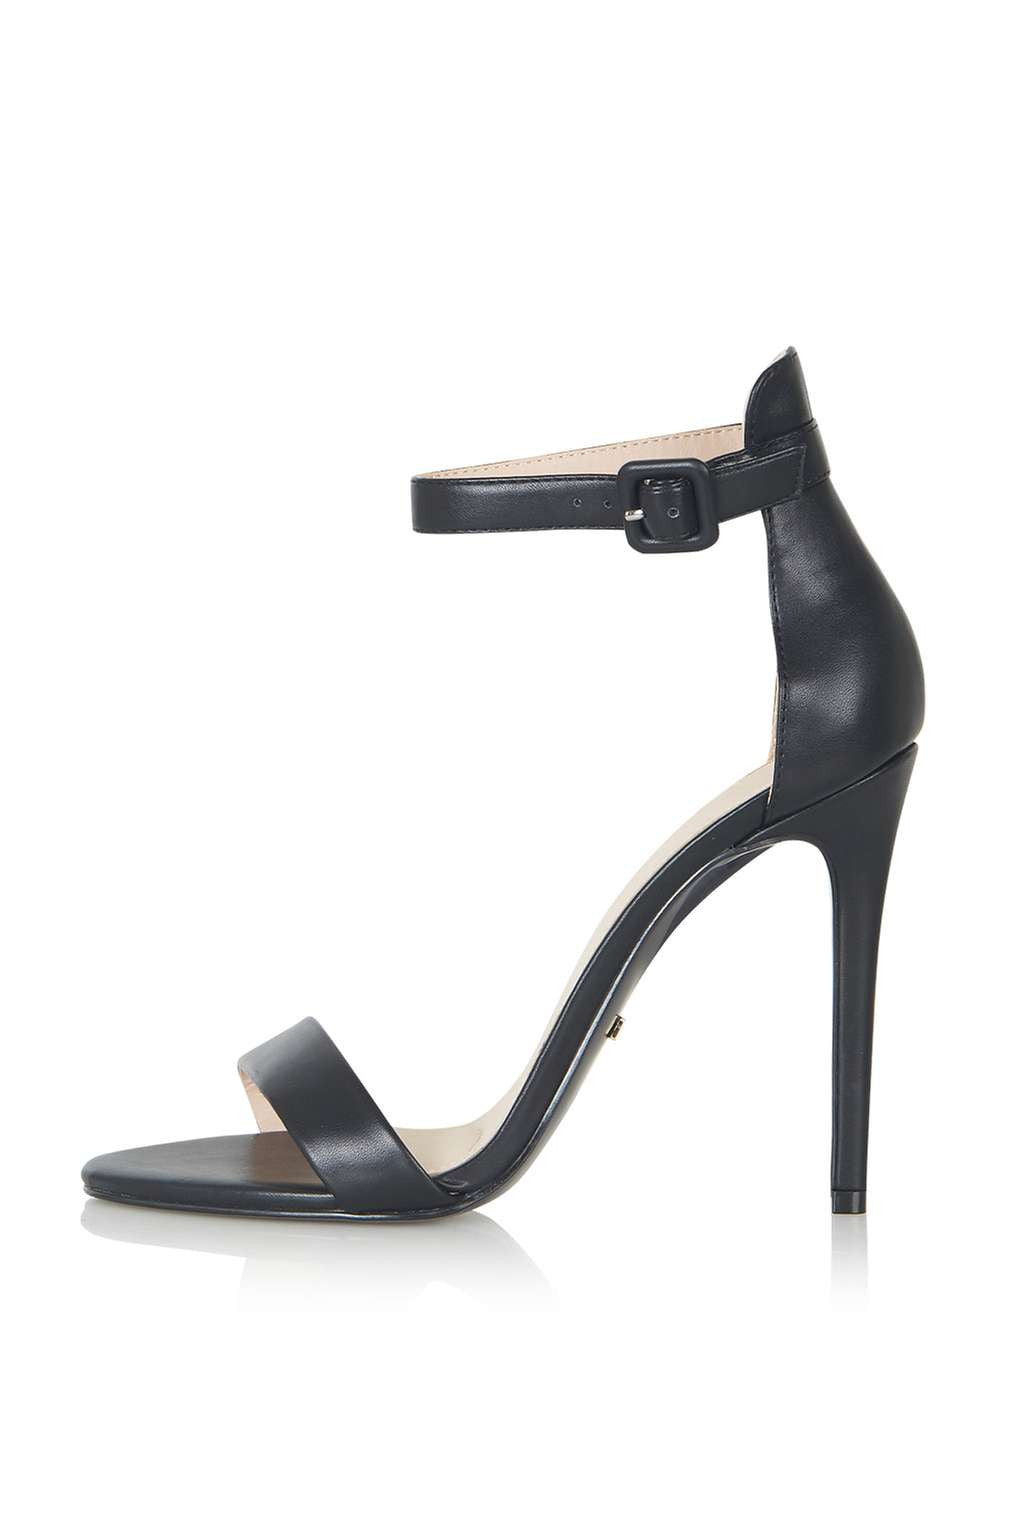 TopShop RITA Two-Part Skinny Sandals